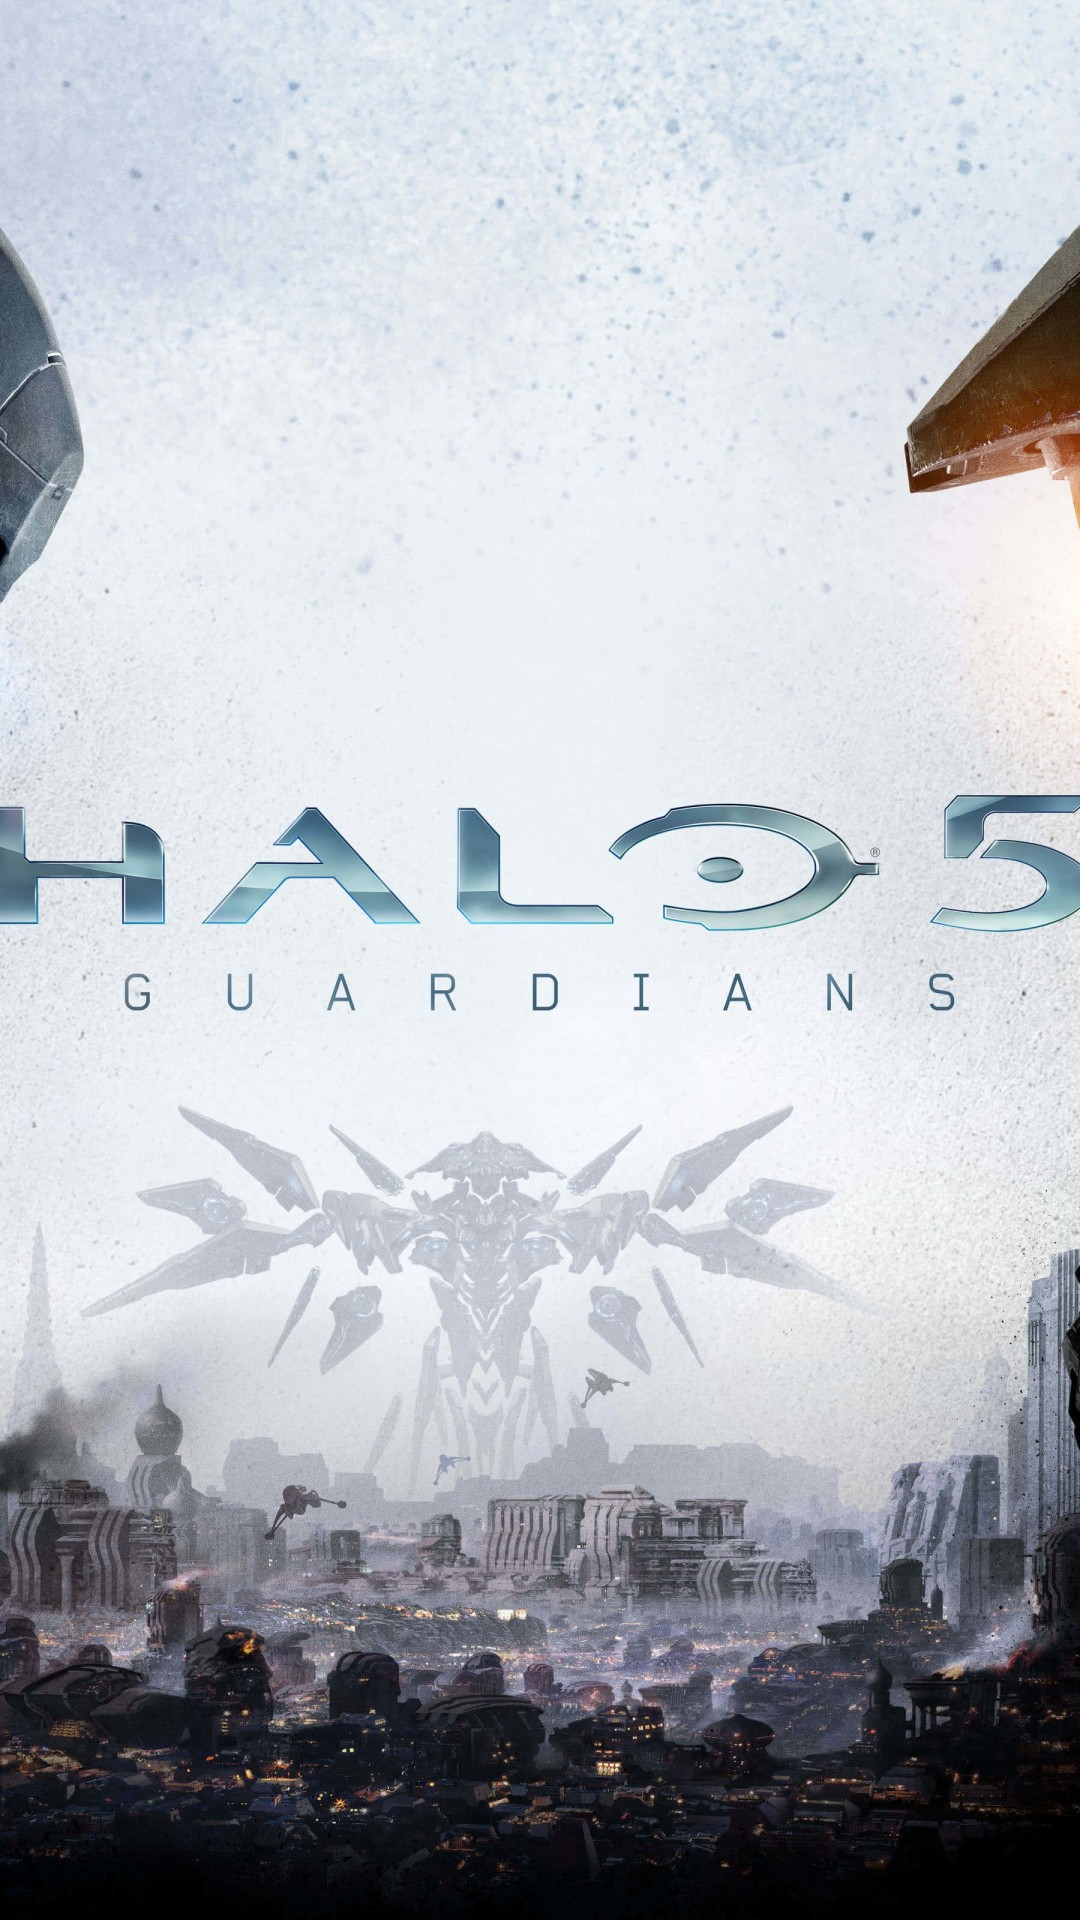 Halo 5: Guardians Wallpaper for HTC One